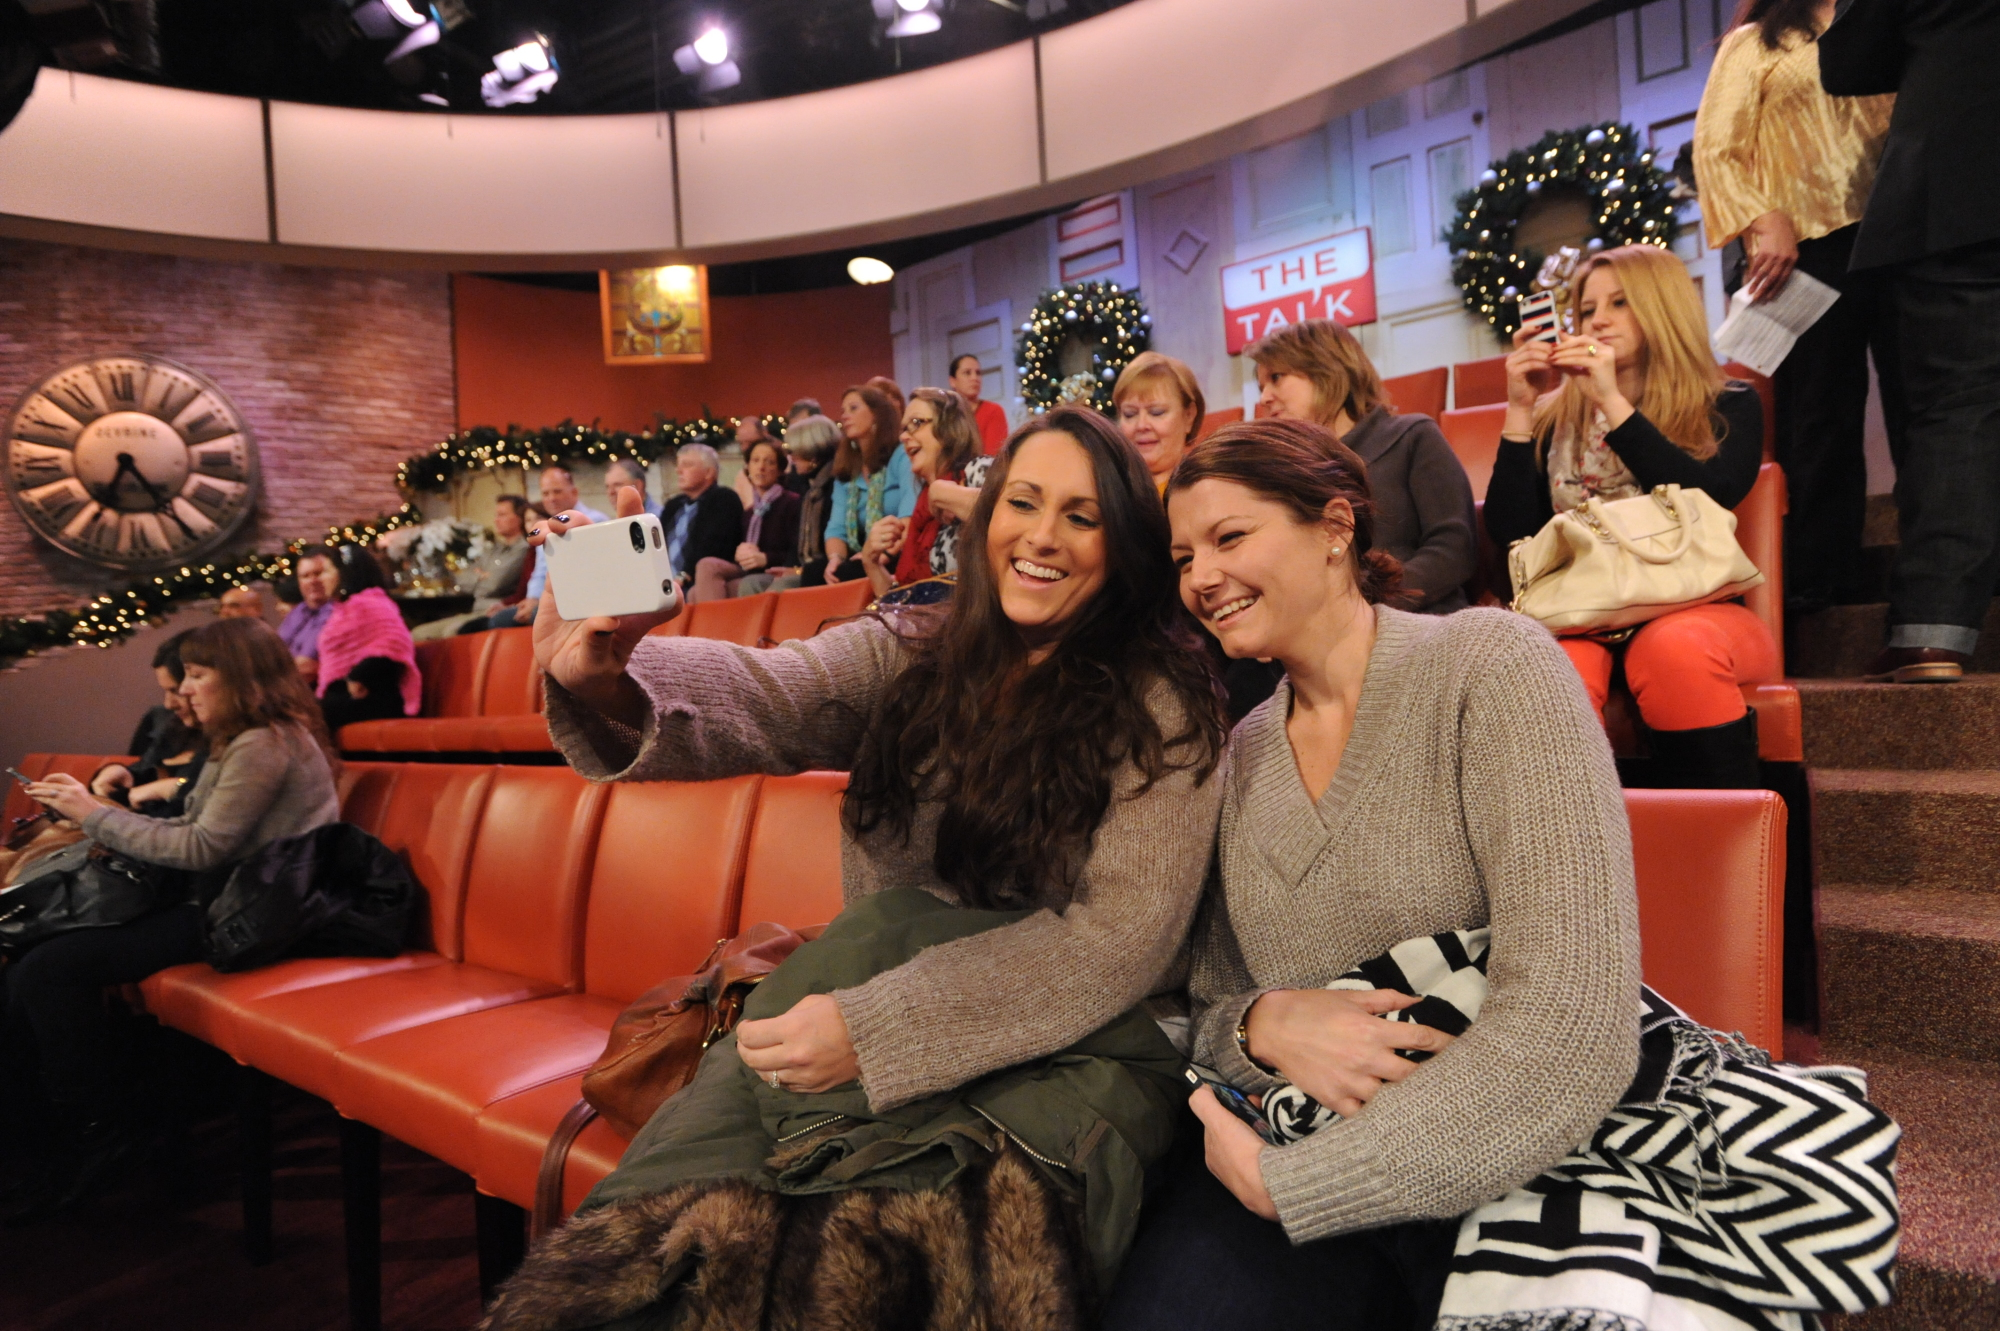 The Talk Audience Members